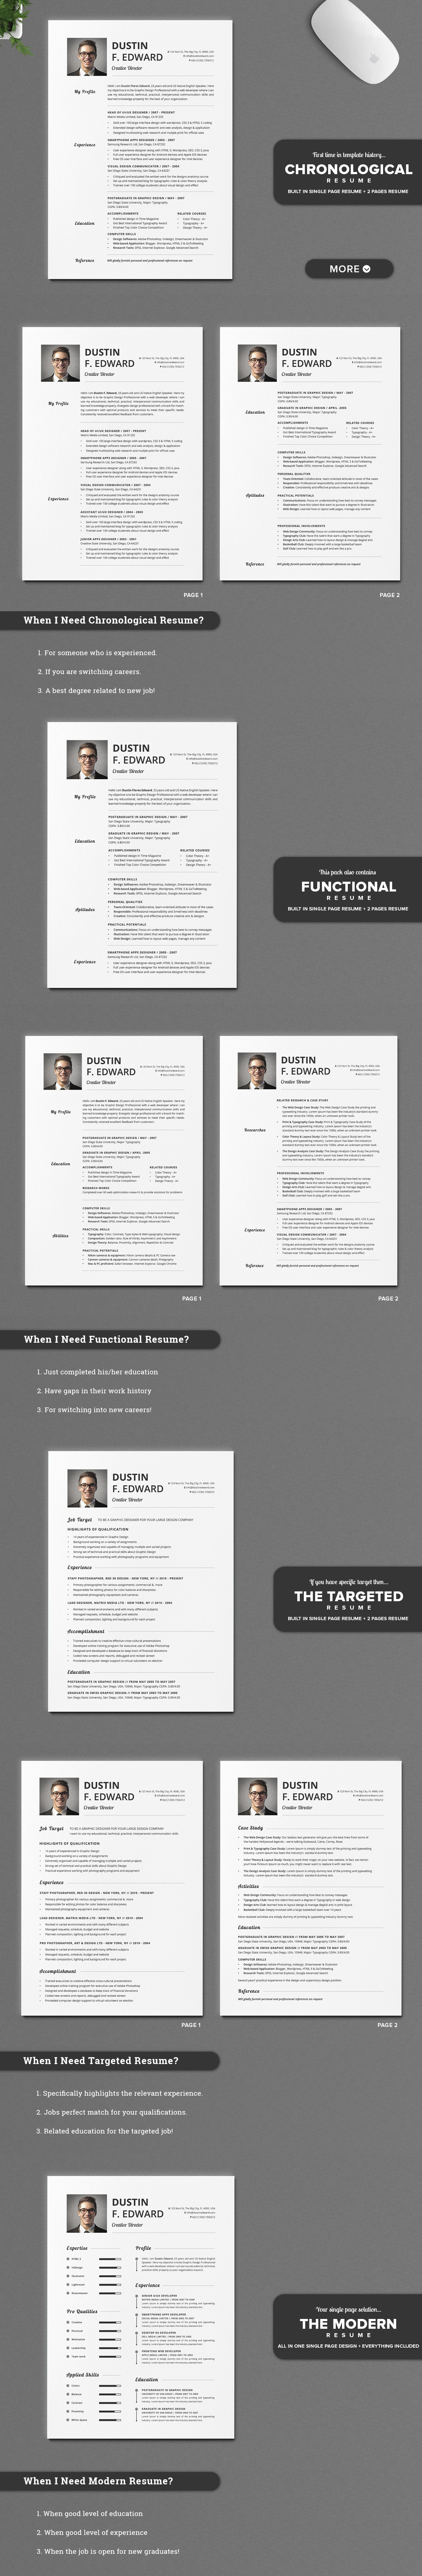 how to organize a resume chronological